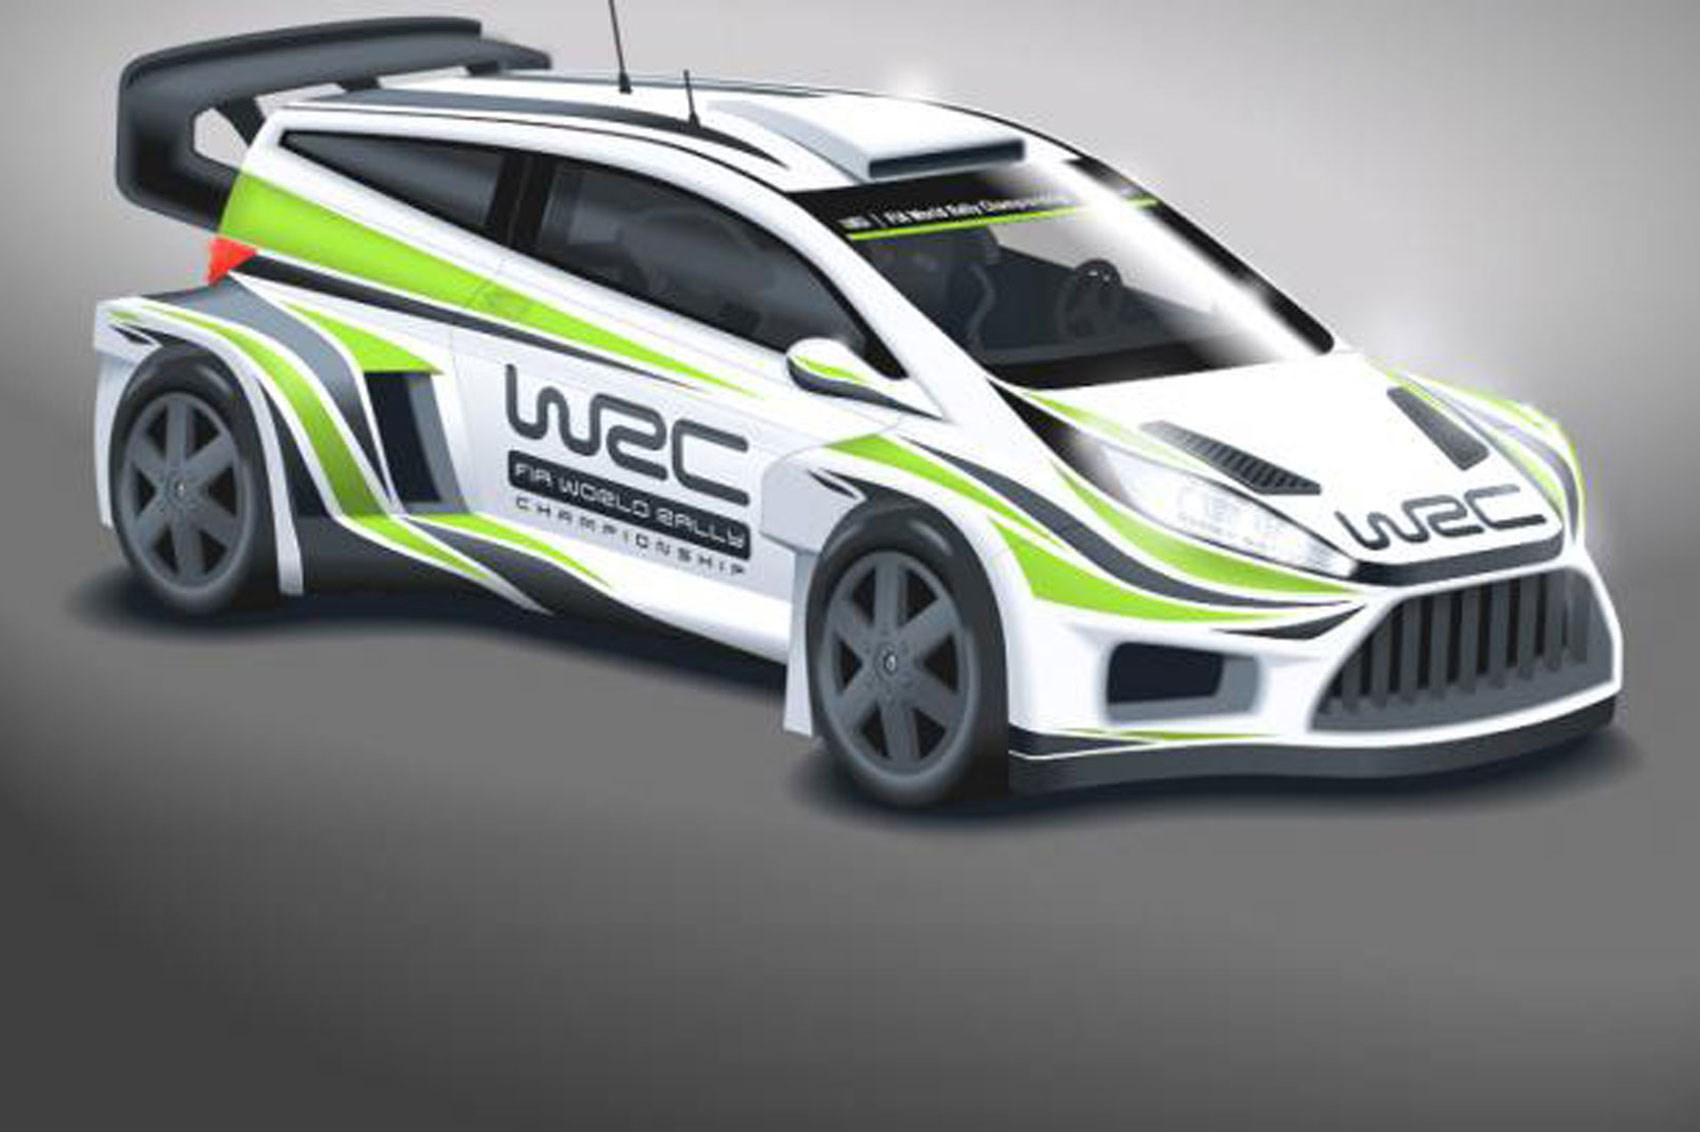 Ultrablogus  Mesmerizing Wild New Look For Wrc Cars In  By Car Magazine With Handsome Wrc Cars Will Get Wider Bodies Bigger Wings And More Power For  With Endearing Q Audi Interior Also Interior Nissan Navara In Addition Jeep Renegade Interior Specs And  Juke Interior As Well As Touareg Interior Dimensions Additionally Phantom Car Interior From Carmagazinecouk With Ultrablogus  Handsome Wild New Look For Wrc Cars In  By Car Magazine With Endearing Wrc Cars Will Get Wider Bodies Bigger Wings And More Power For  And Mesmerizing Q Audi Interior Also Interior Nissan Navara In Addition Jeep Renegade Interior Specs From Carmagazinecouk